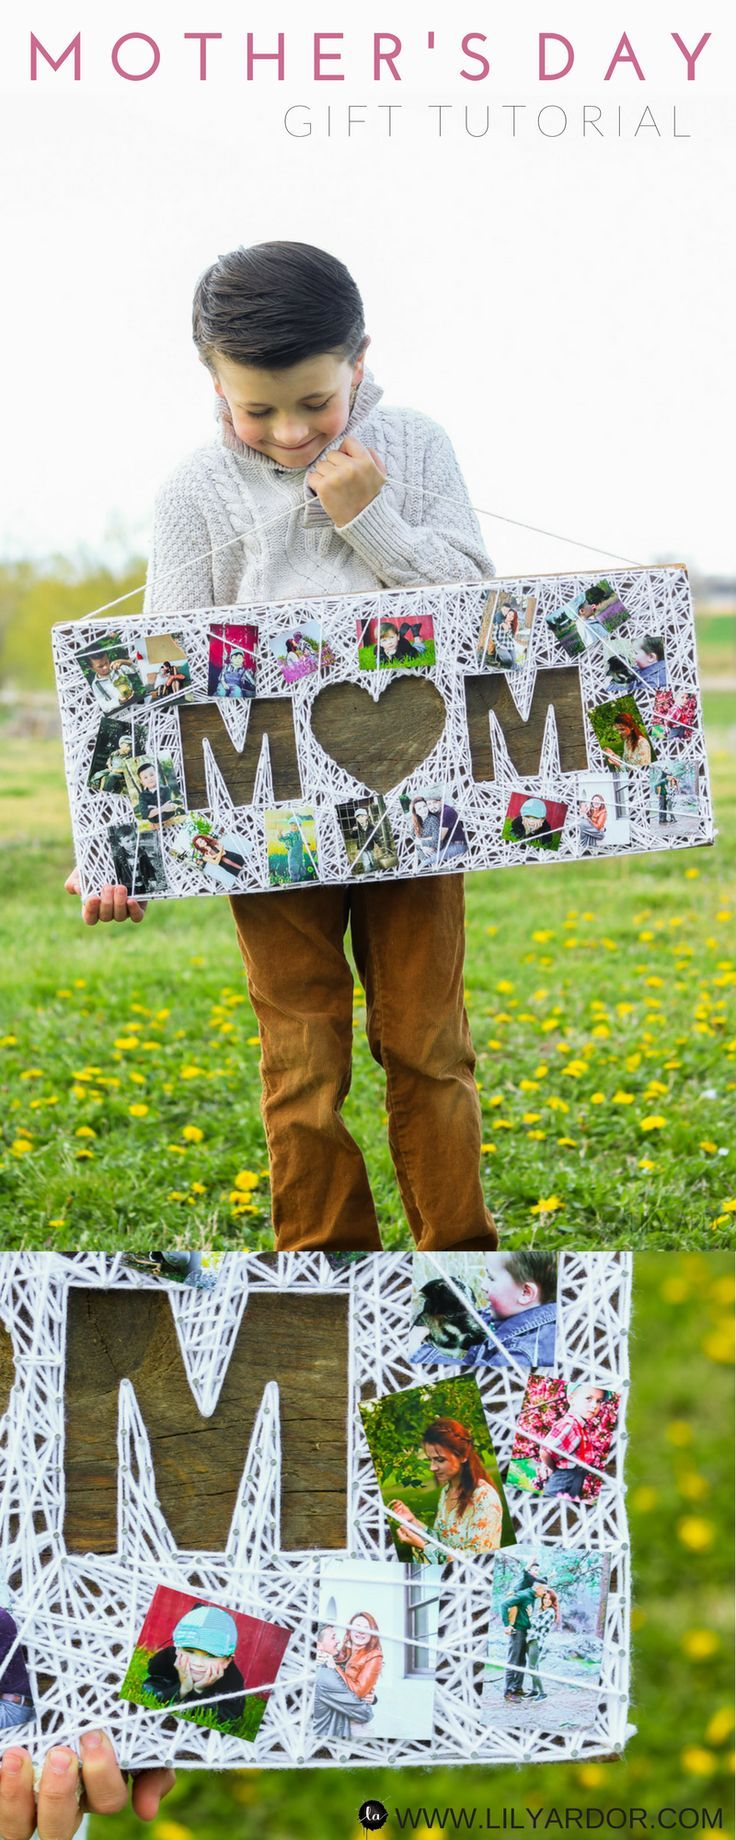 Mother's day gift ideas | PERSONALIZED | DIY | STRING ART | PHOTO